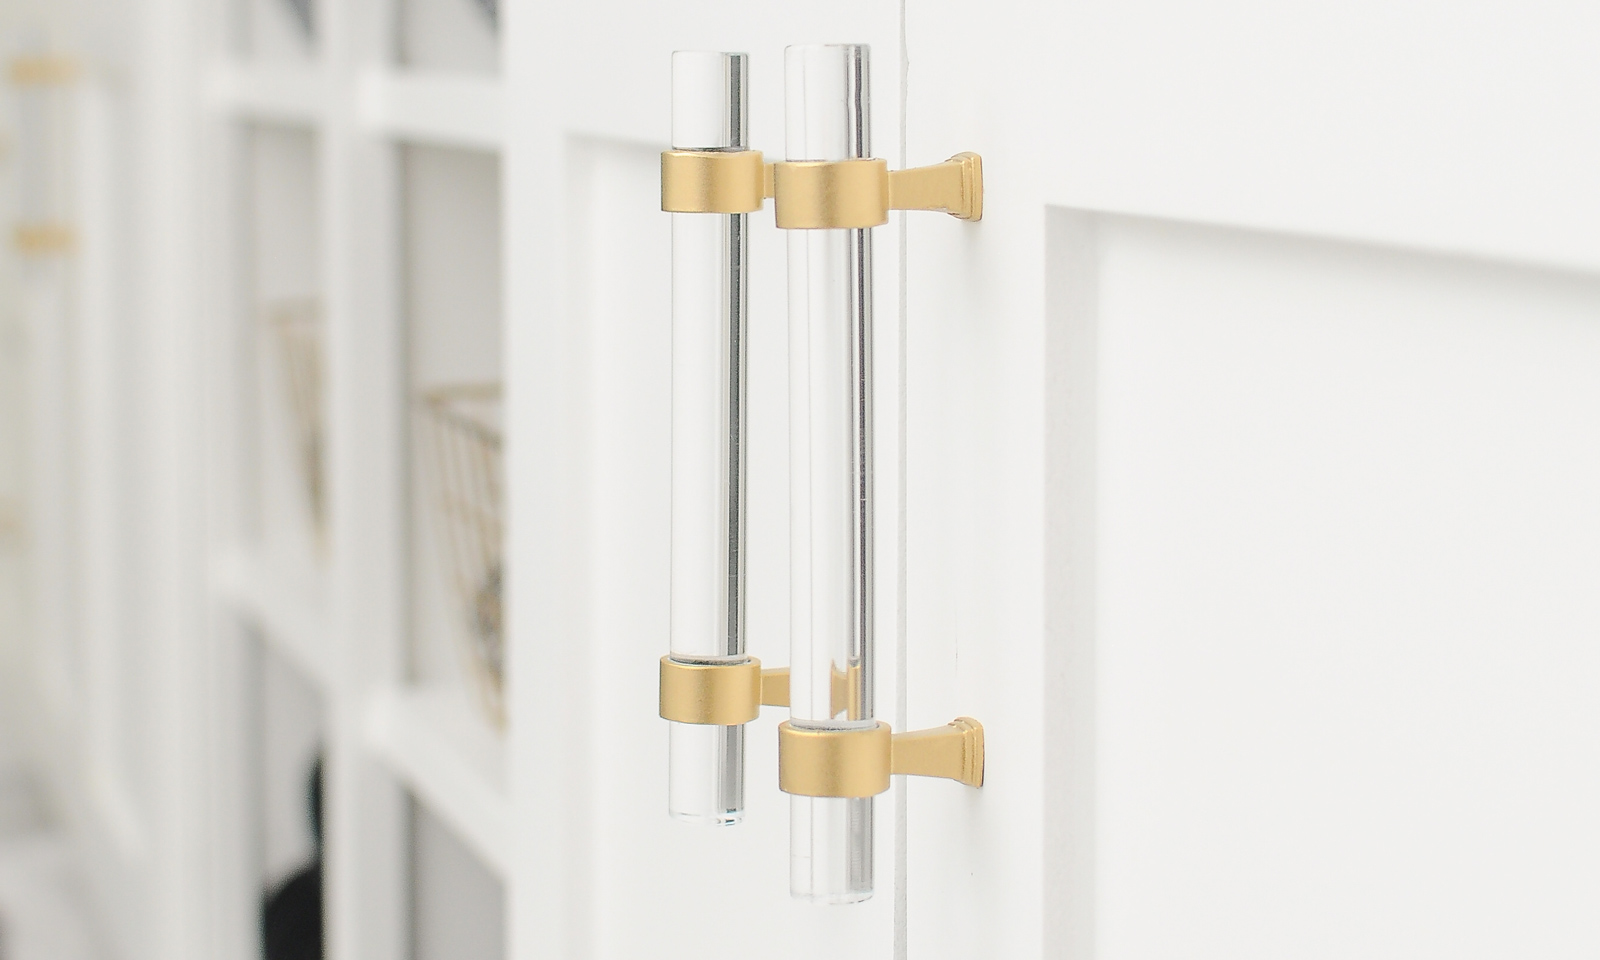 A step-by-step DIY tutorial on how to transform chrome cabinet hardware or pulls into a brushed gold finish. The end result is gorgeous! So easy.